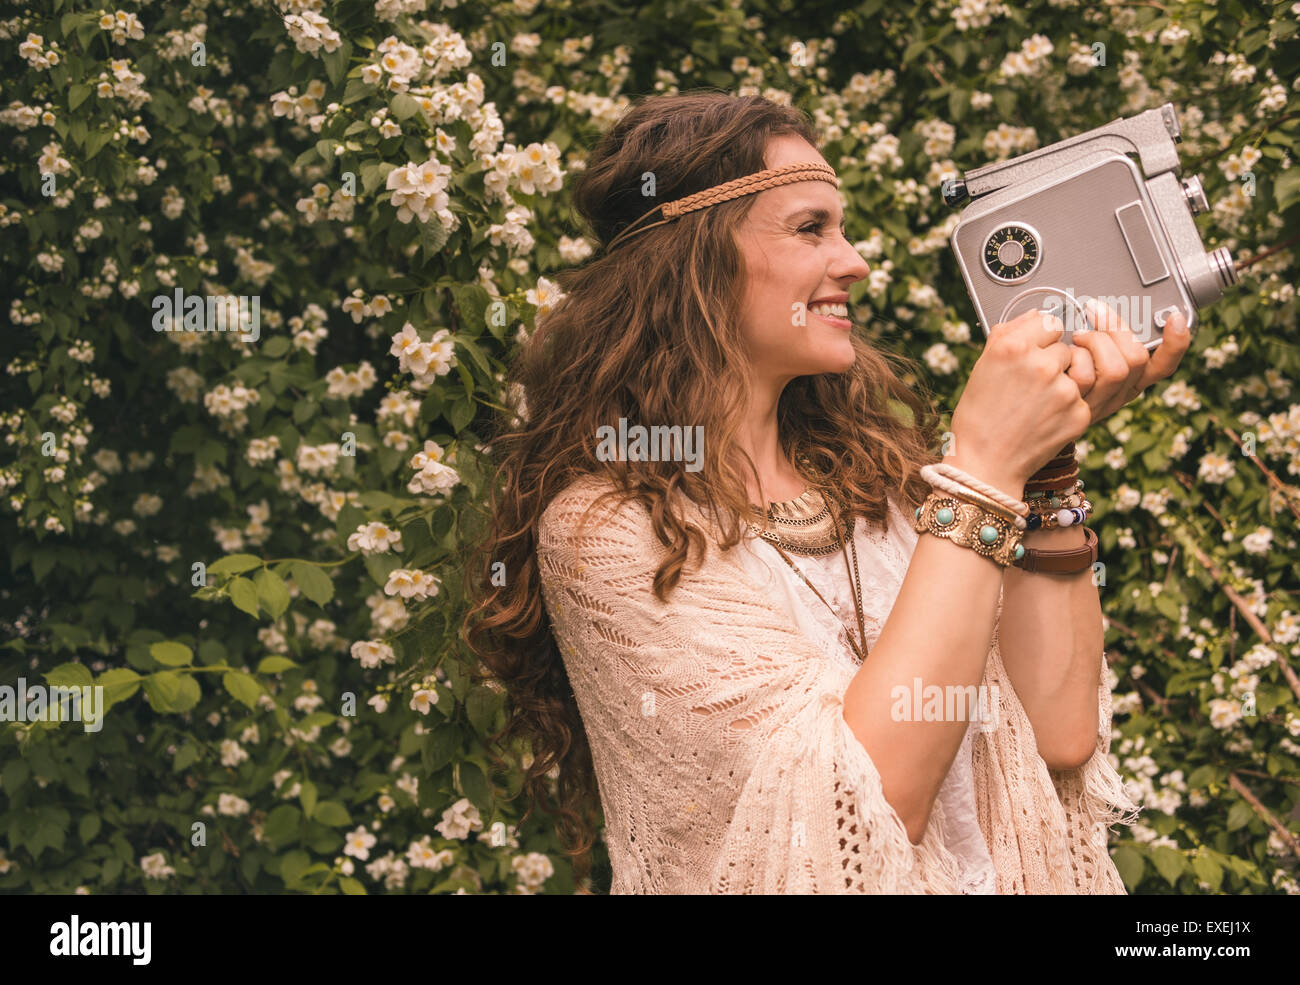 Longhaired hippy-looking young lady in knitted shawl and white blouse standing among flowers and using retro camera Stock Photo